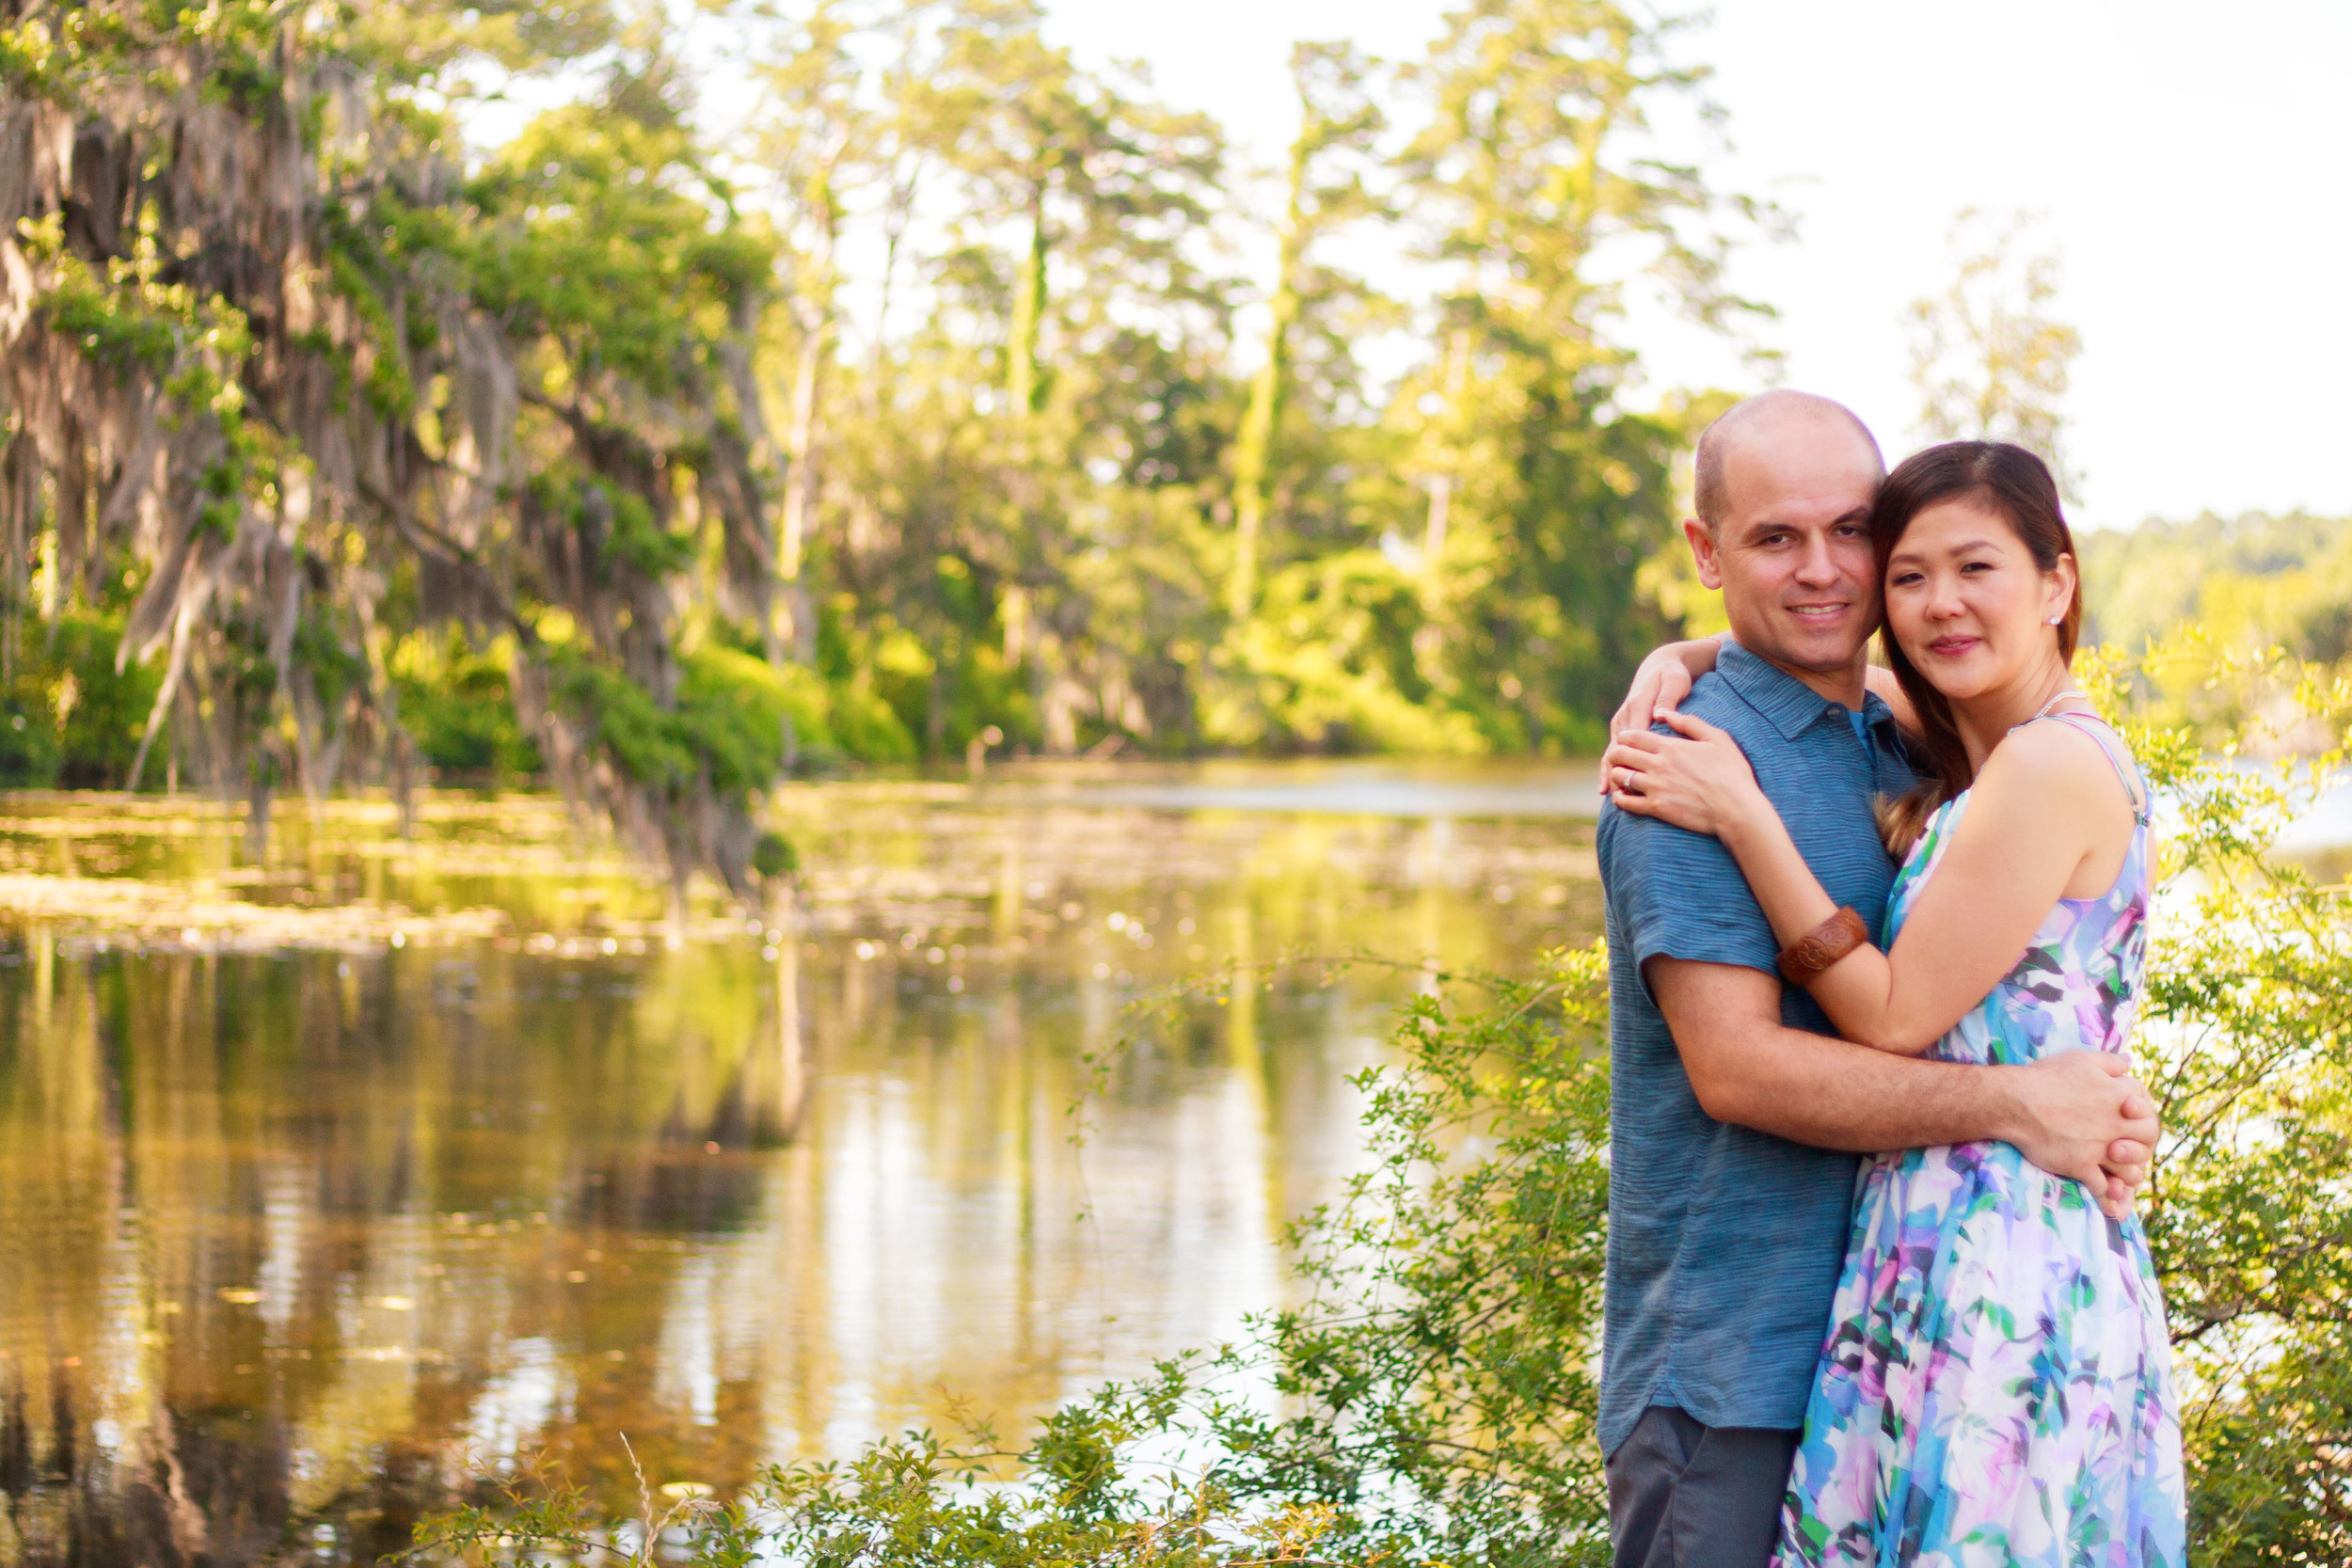 Airlie_Gardens_Engagement_Photography_Brian_&_Amy_37.jpg